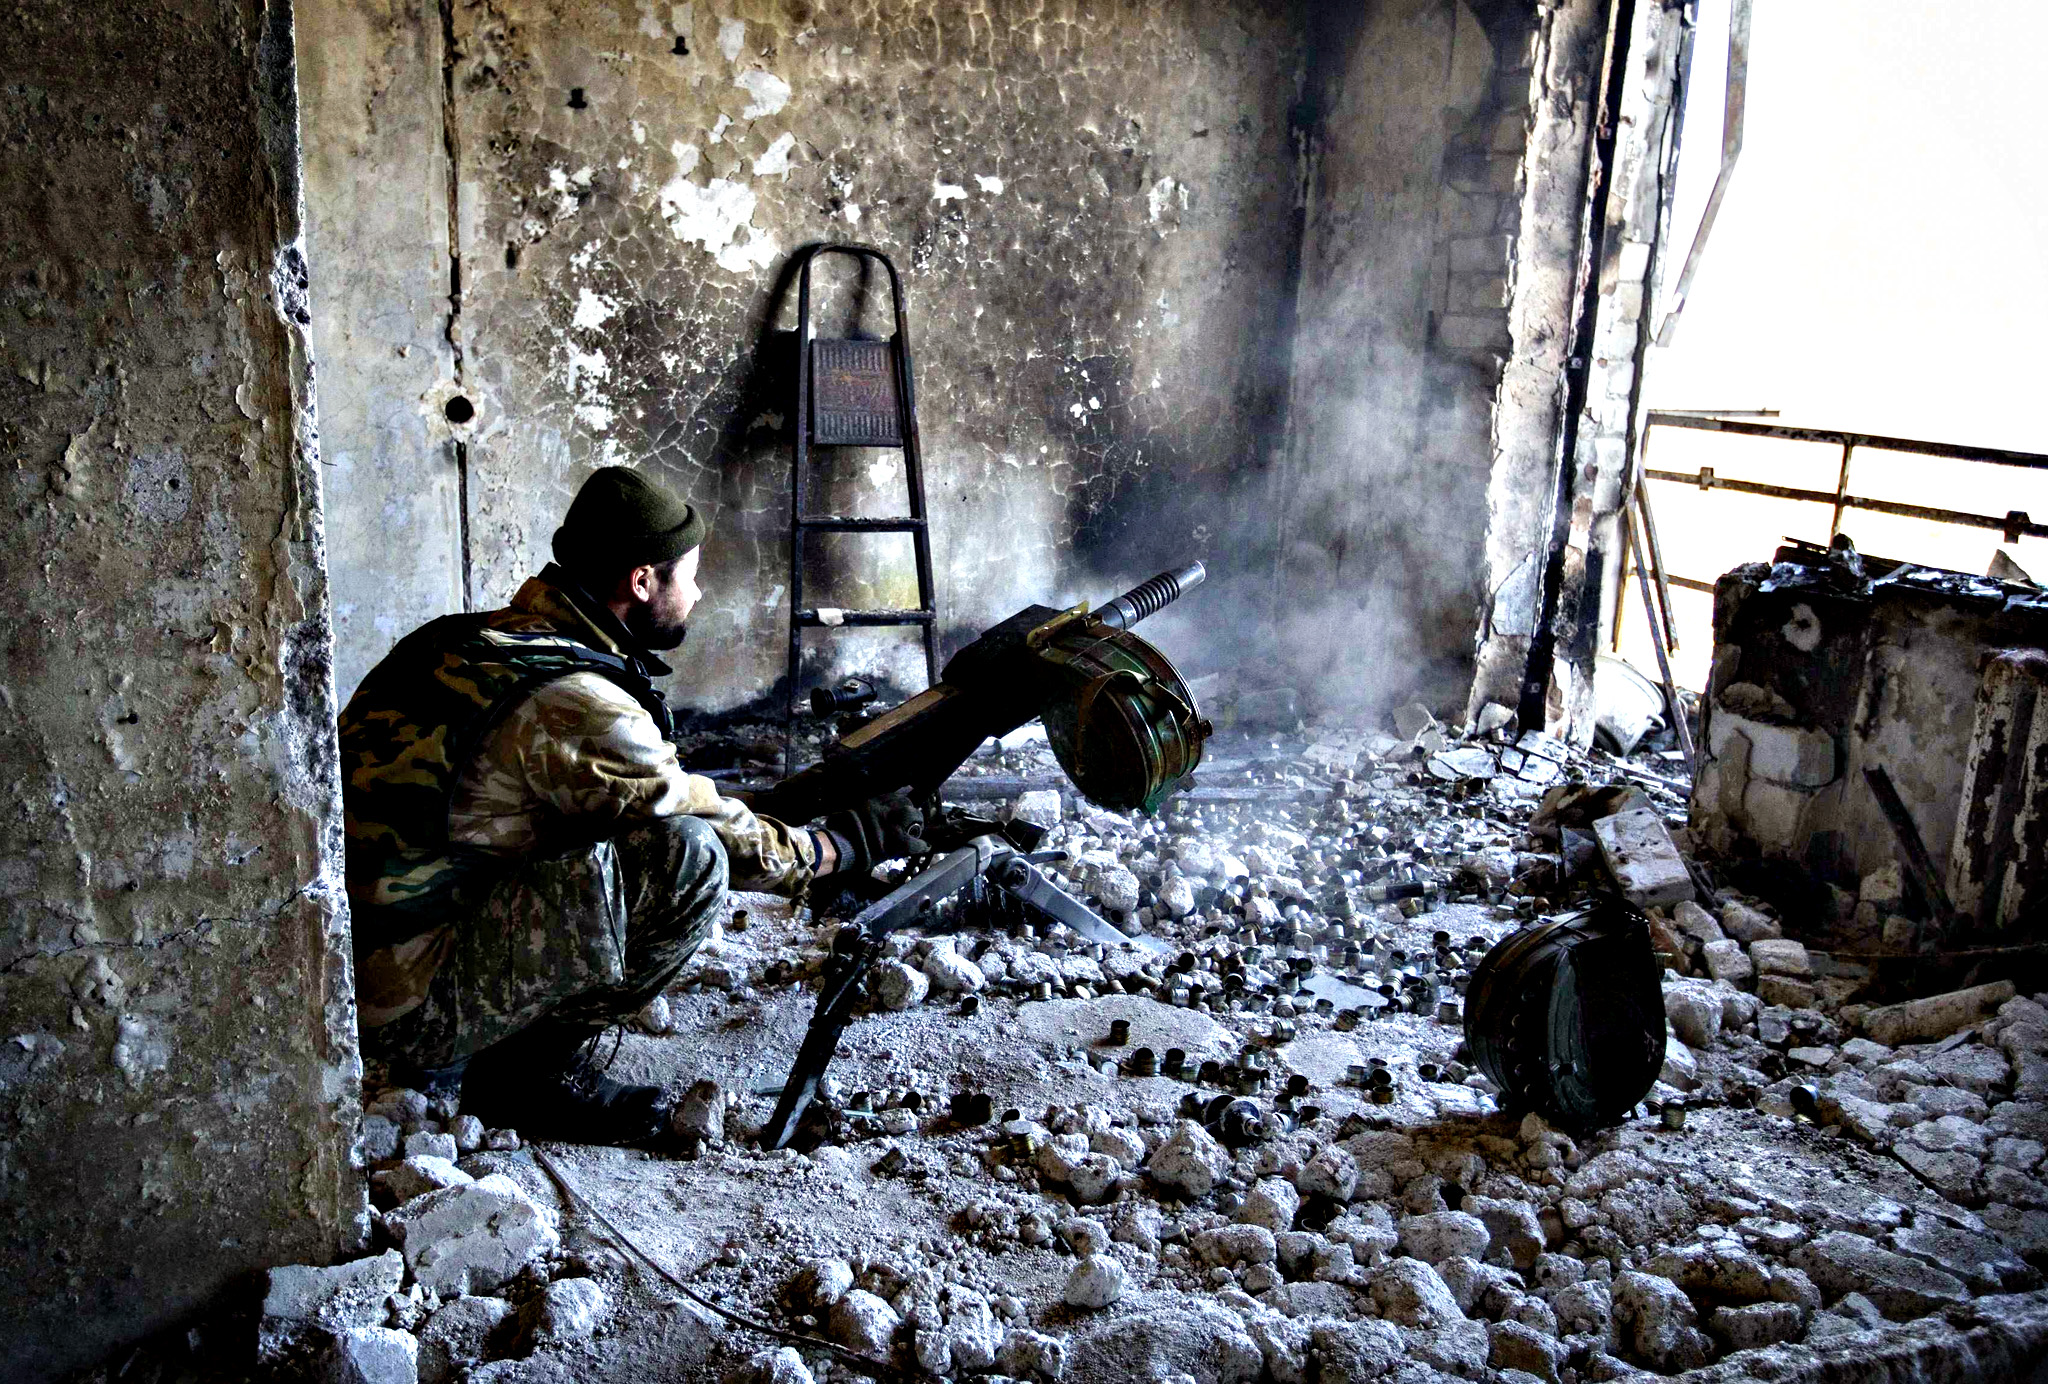 A pro-Russian separatist fires an automatic grenade launcher from his position during fighting with Ukrainian government forces near the Sergey Prokofiev International Airport in Donetsk...A pro-Russian separatist fires an automatic grenade launcher from his position during fighting with Ukrainian government forces near the Sergey Prokofiev International Airport in Donetsk, eastern Ukraine, October 9, 2014.